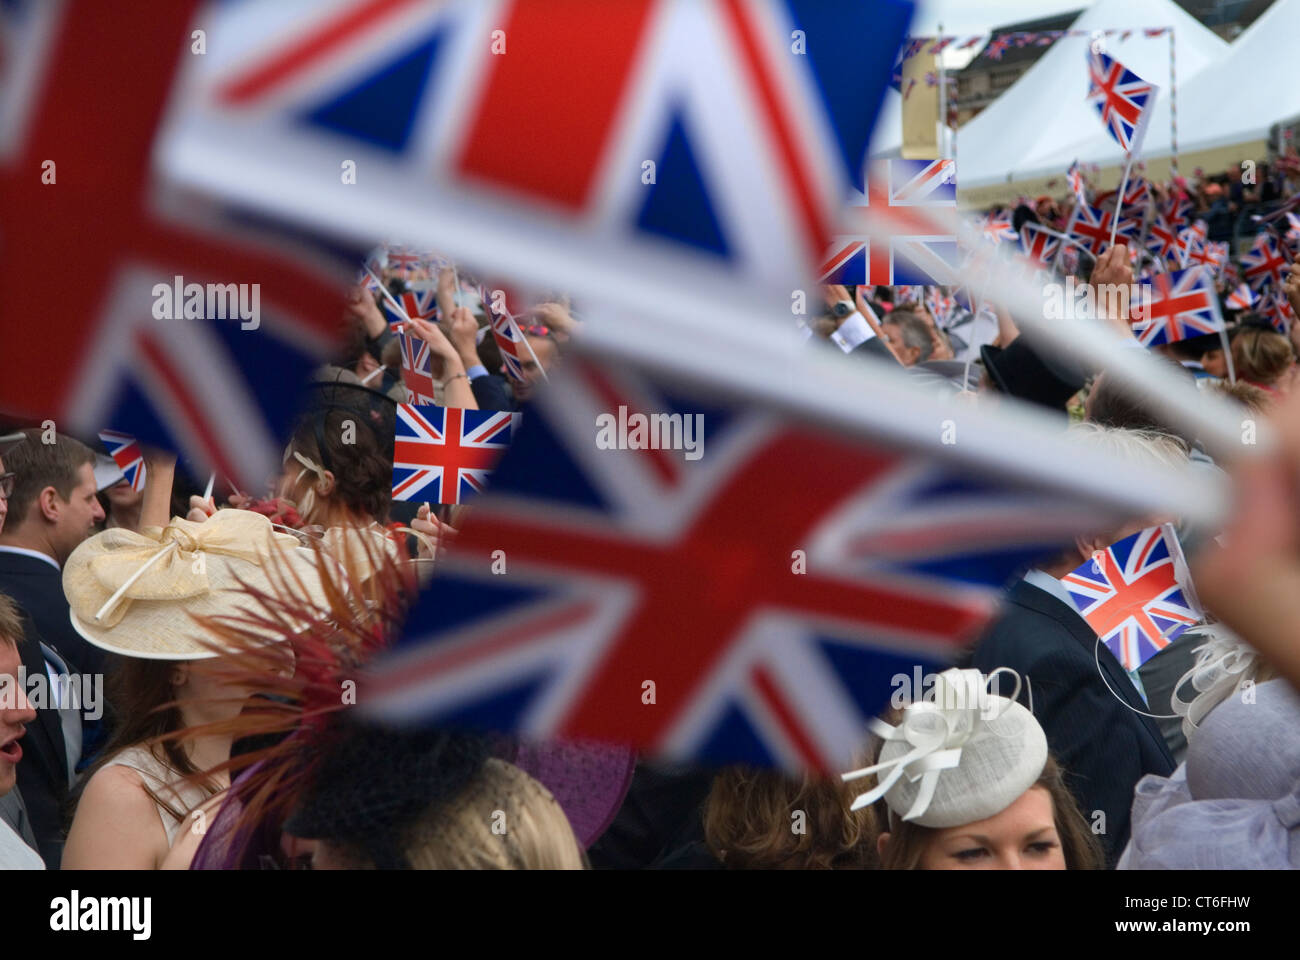 """Royal Ascot singing """"Land of Hope and Glory"""" around the band stand at the end of the days  horse racing Ascot HOMER Stock Photo"""